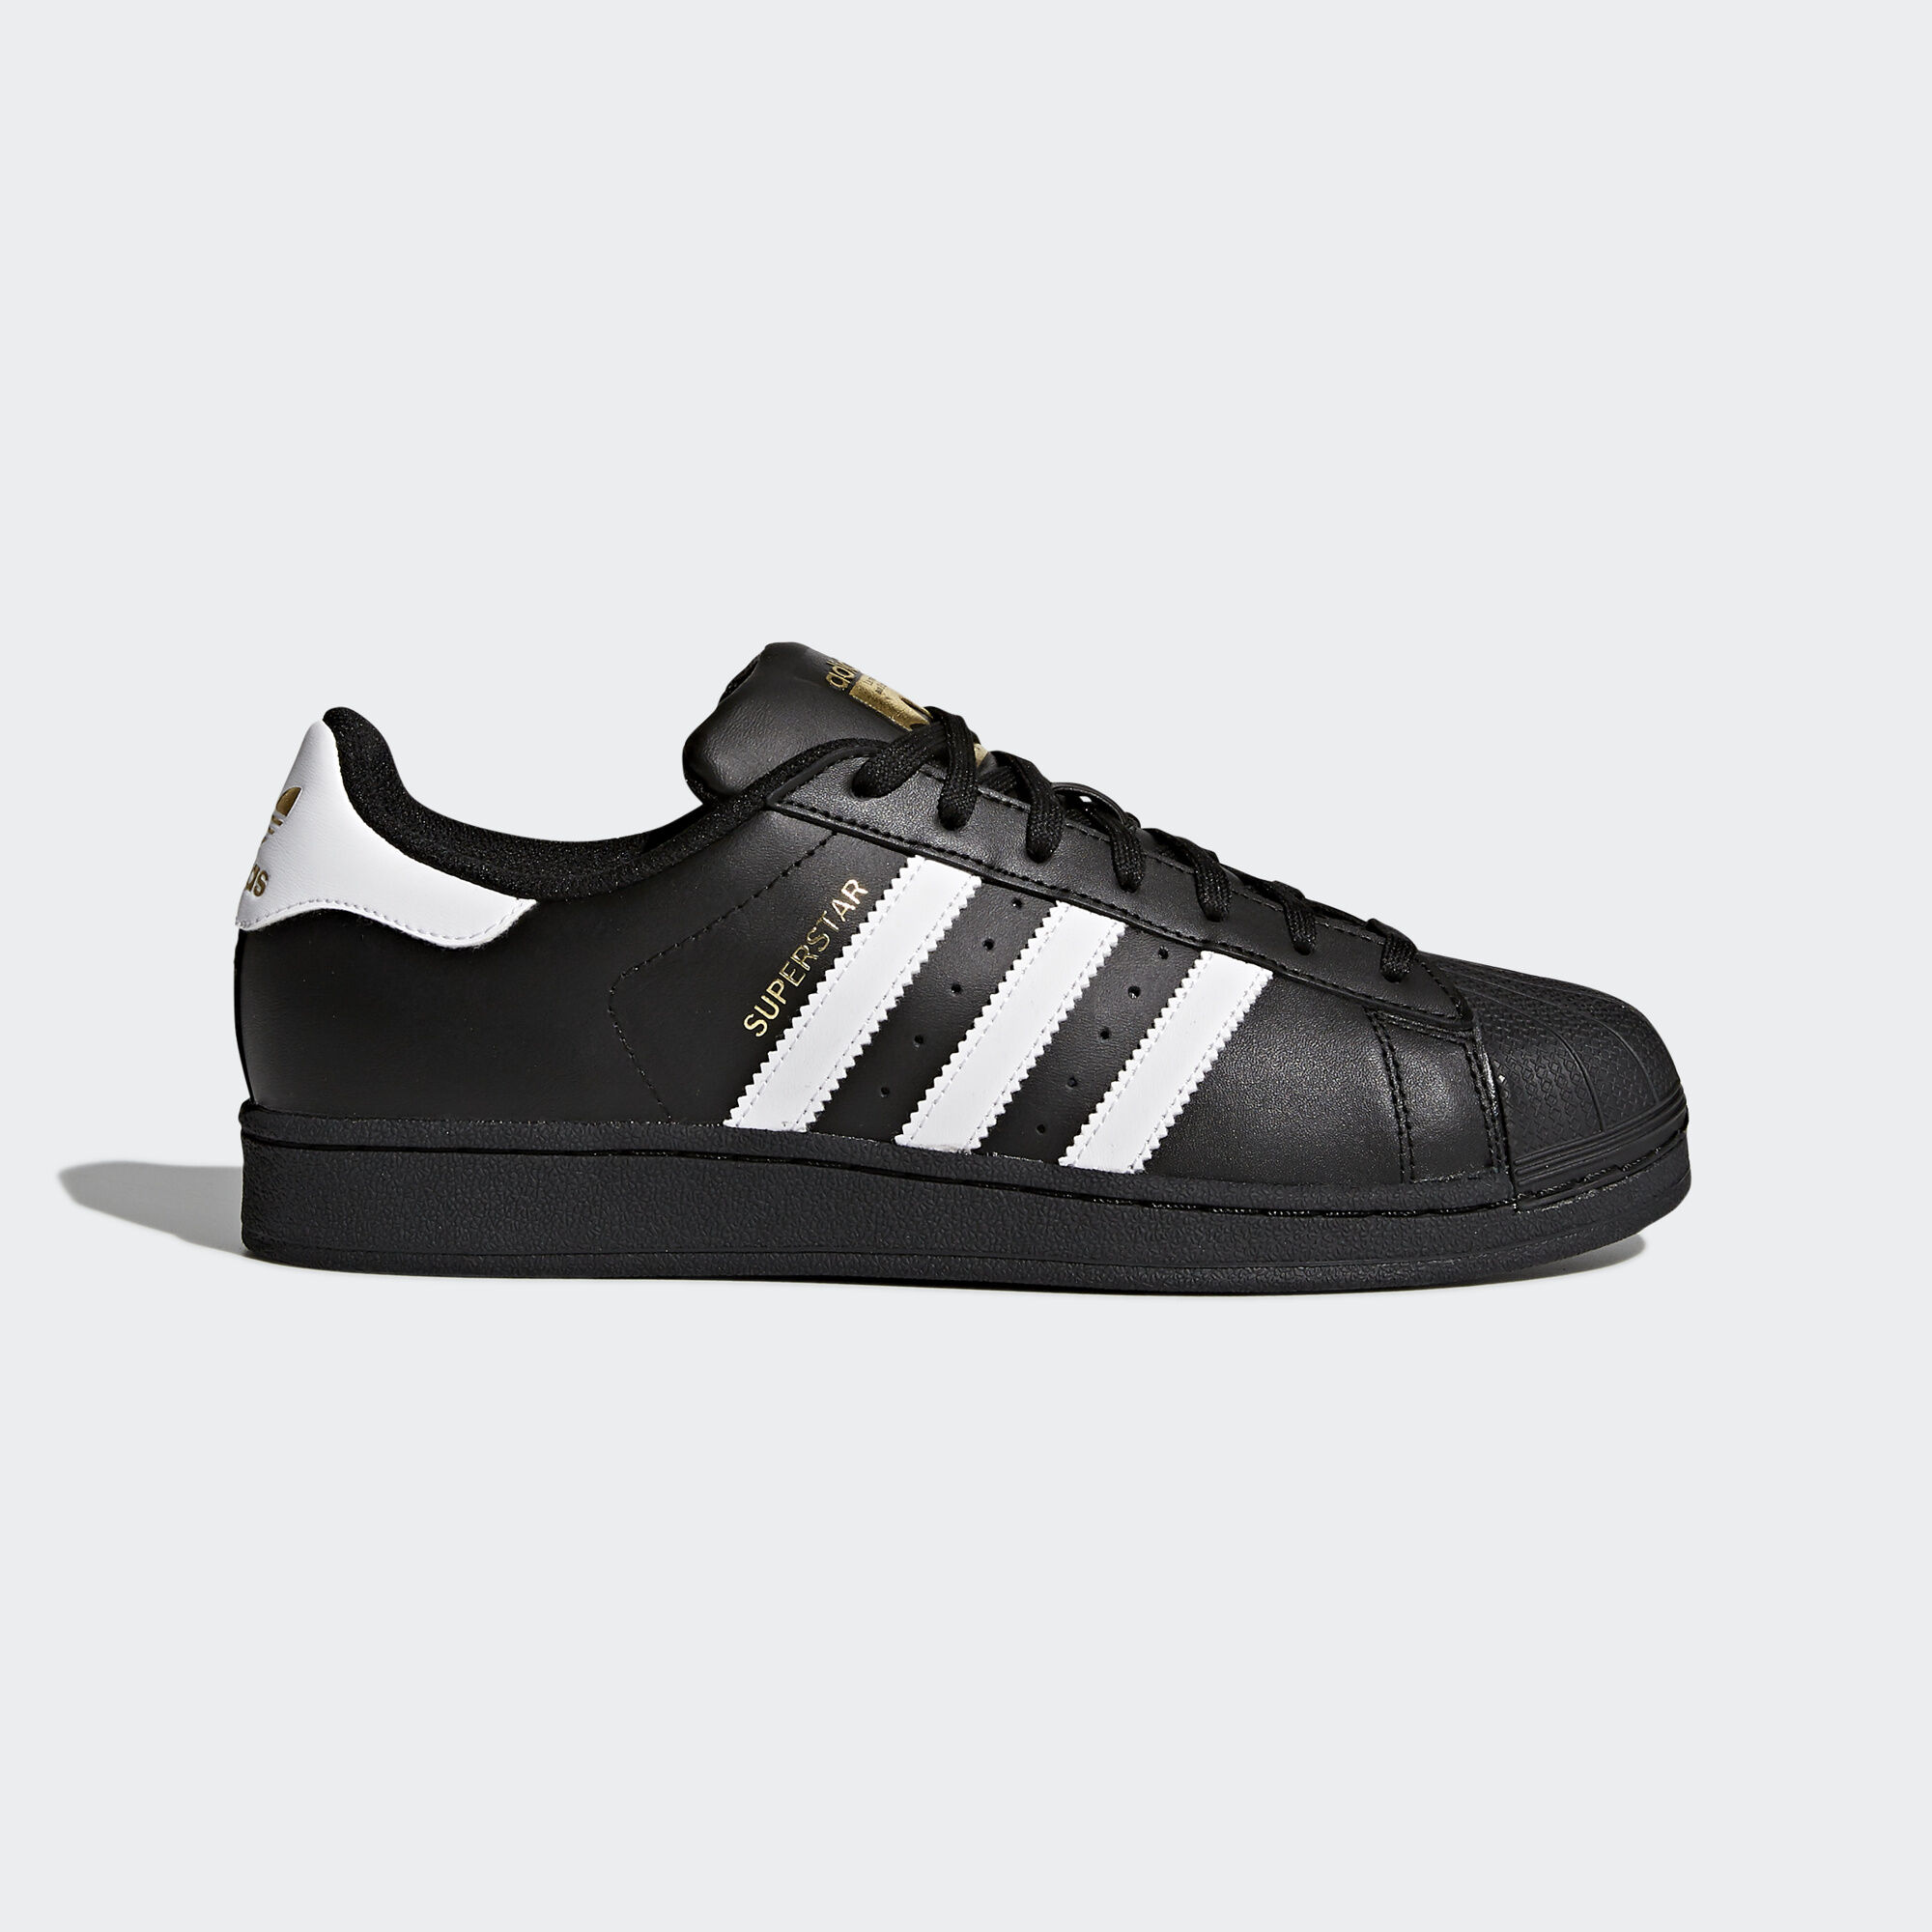 Adidas Superstar All Black Price